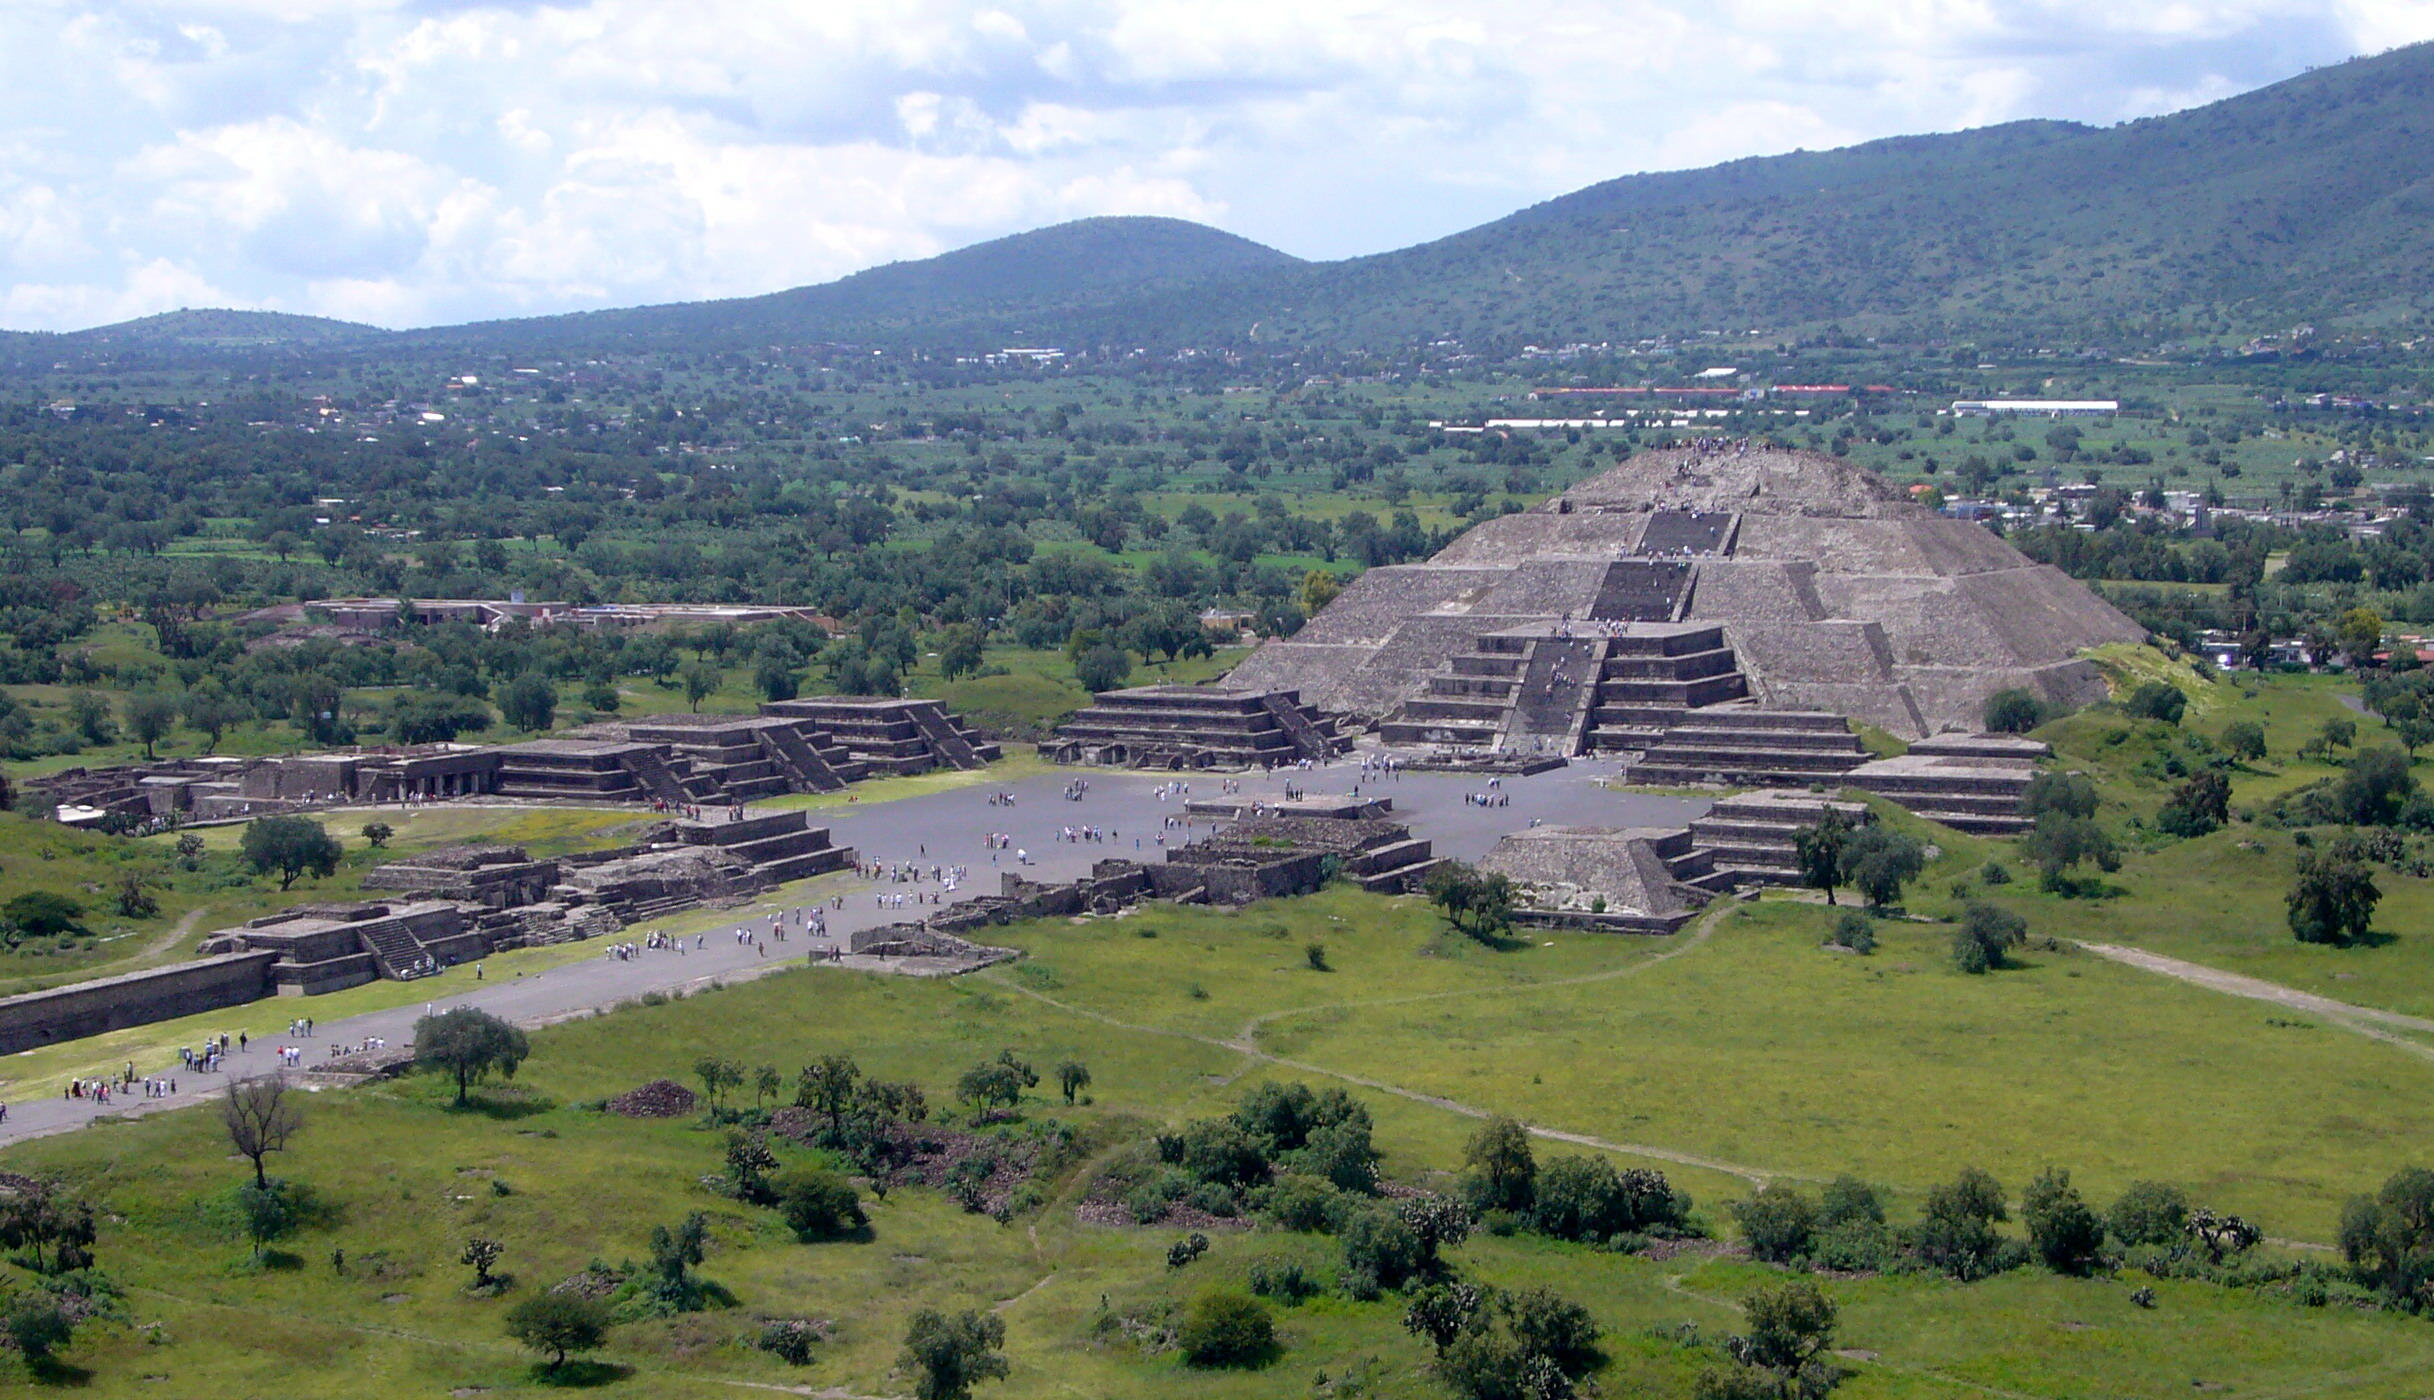 Remains Of Captive Animals Who Ate Humans Found In Mexican Pyramid Piramide de la Luna 072006